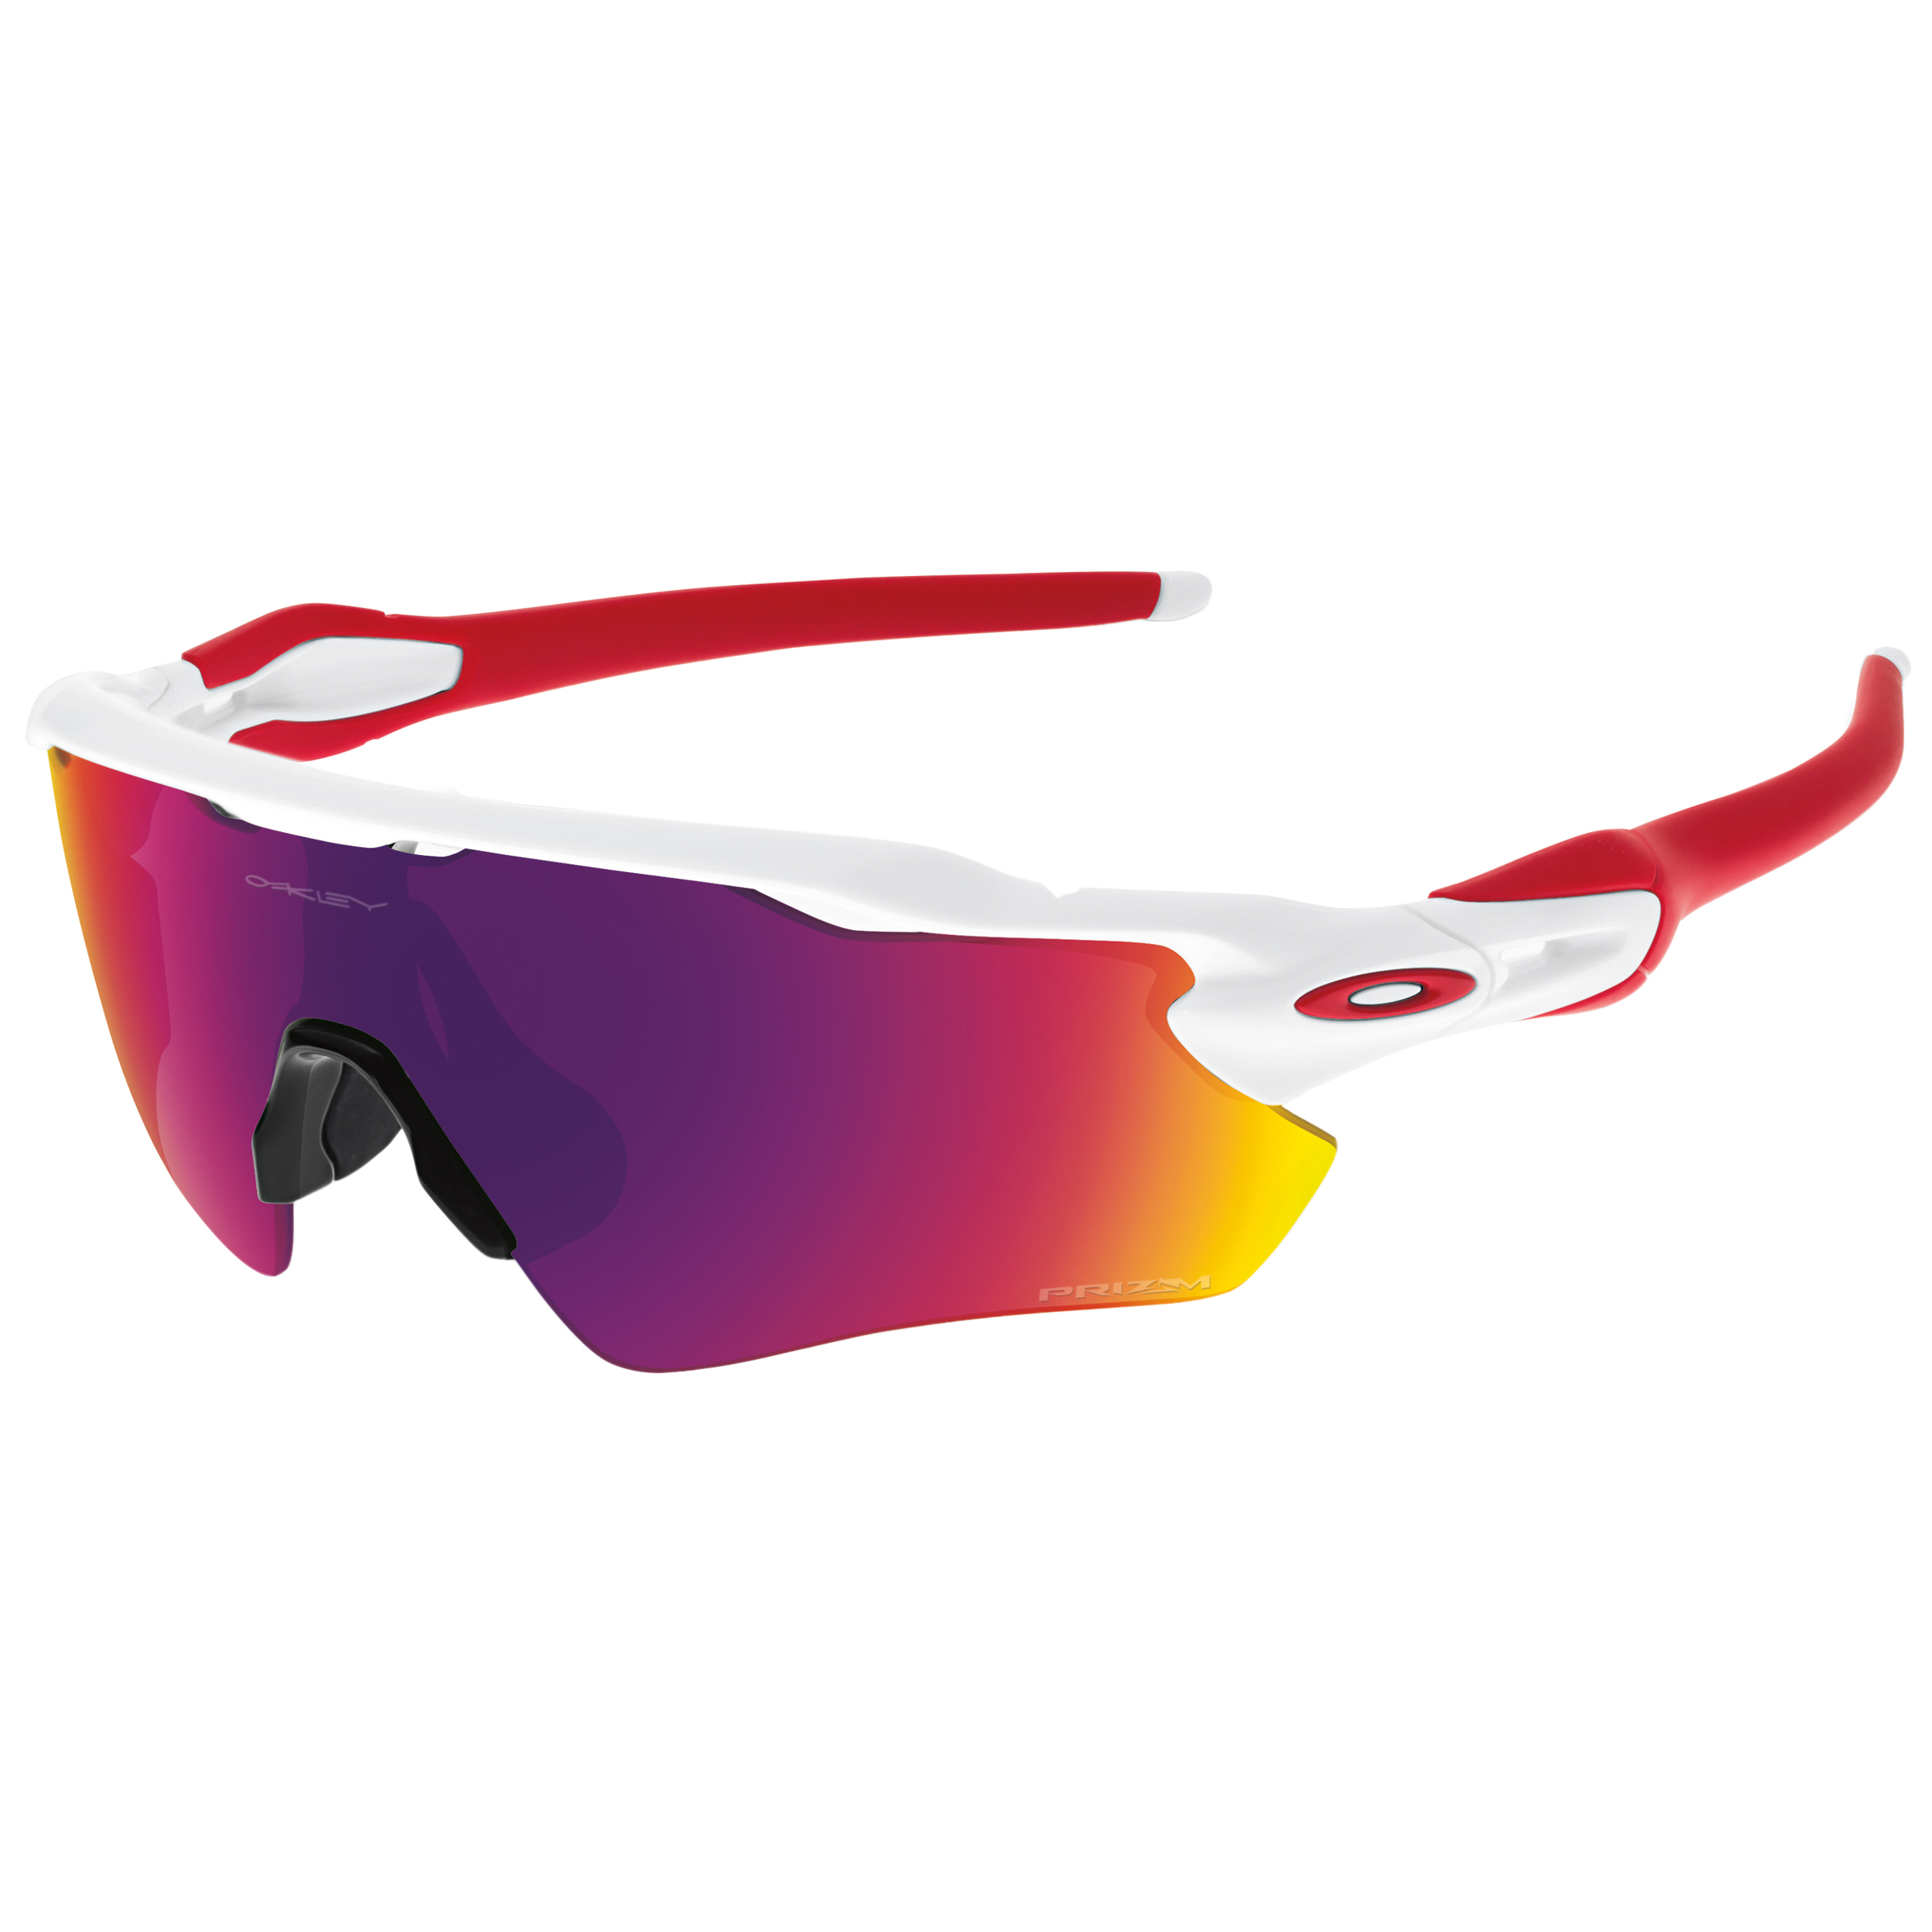 bed996c07a Oakley Radar EV Path Sunglasses - Unisex